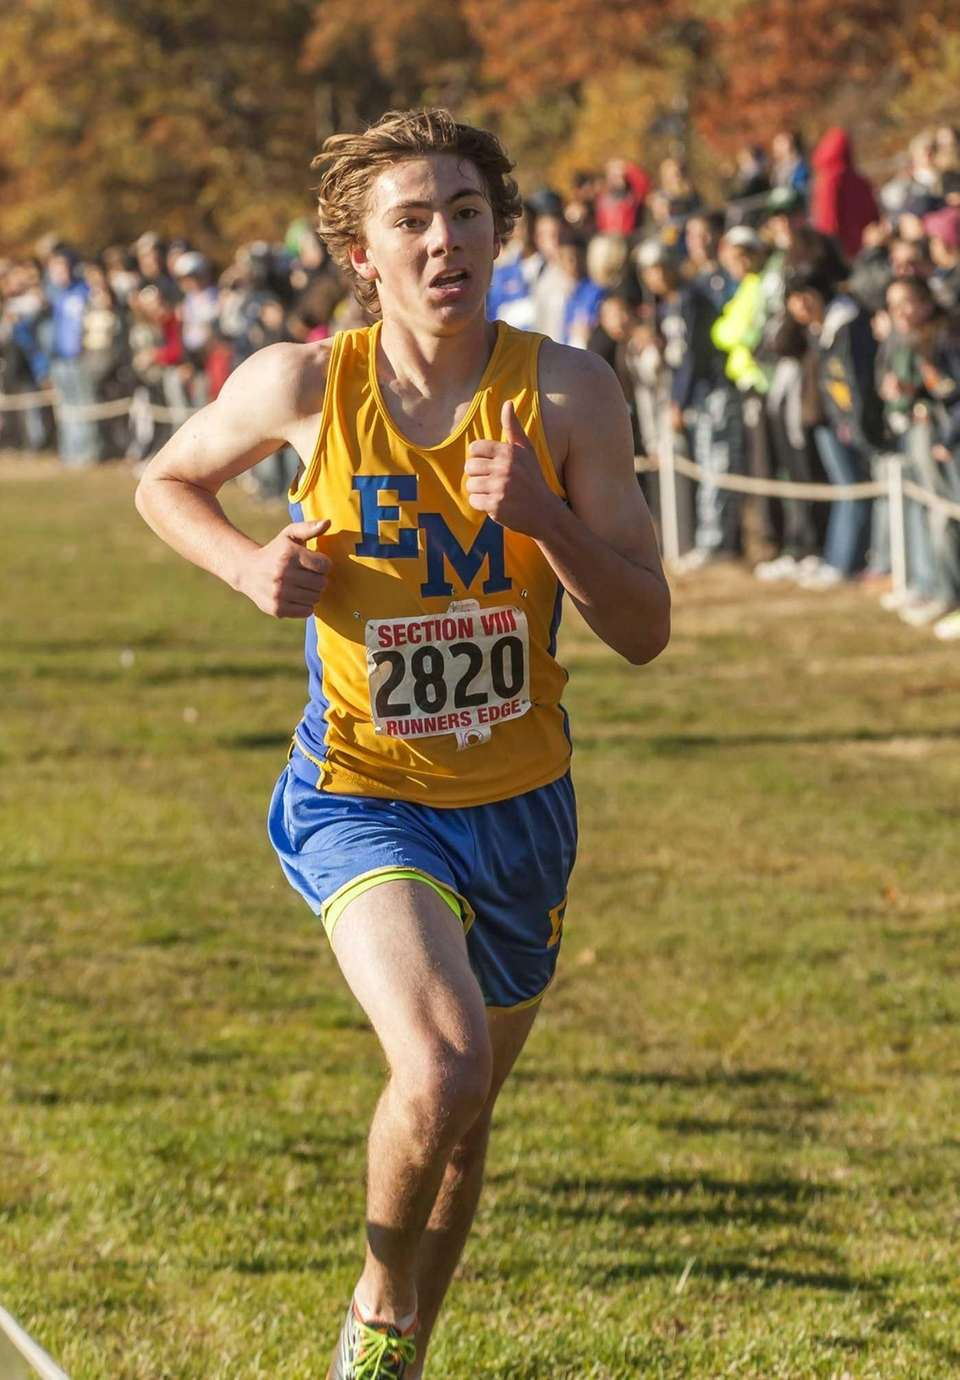 East Meadow's Michael Grady takes second place with